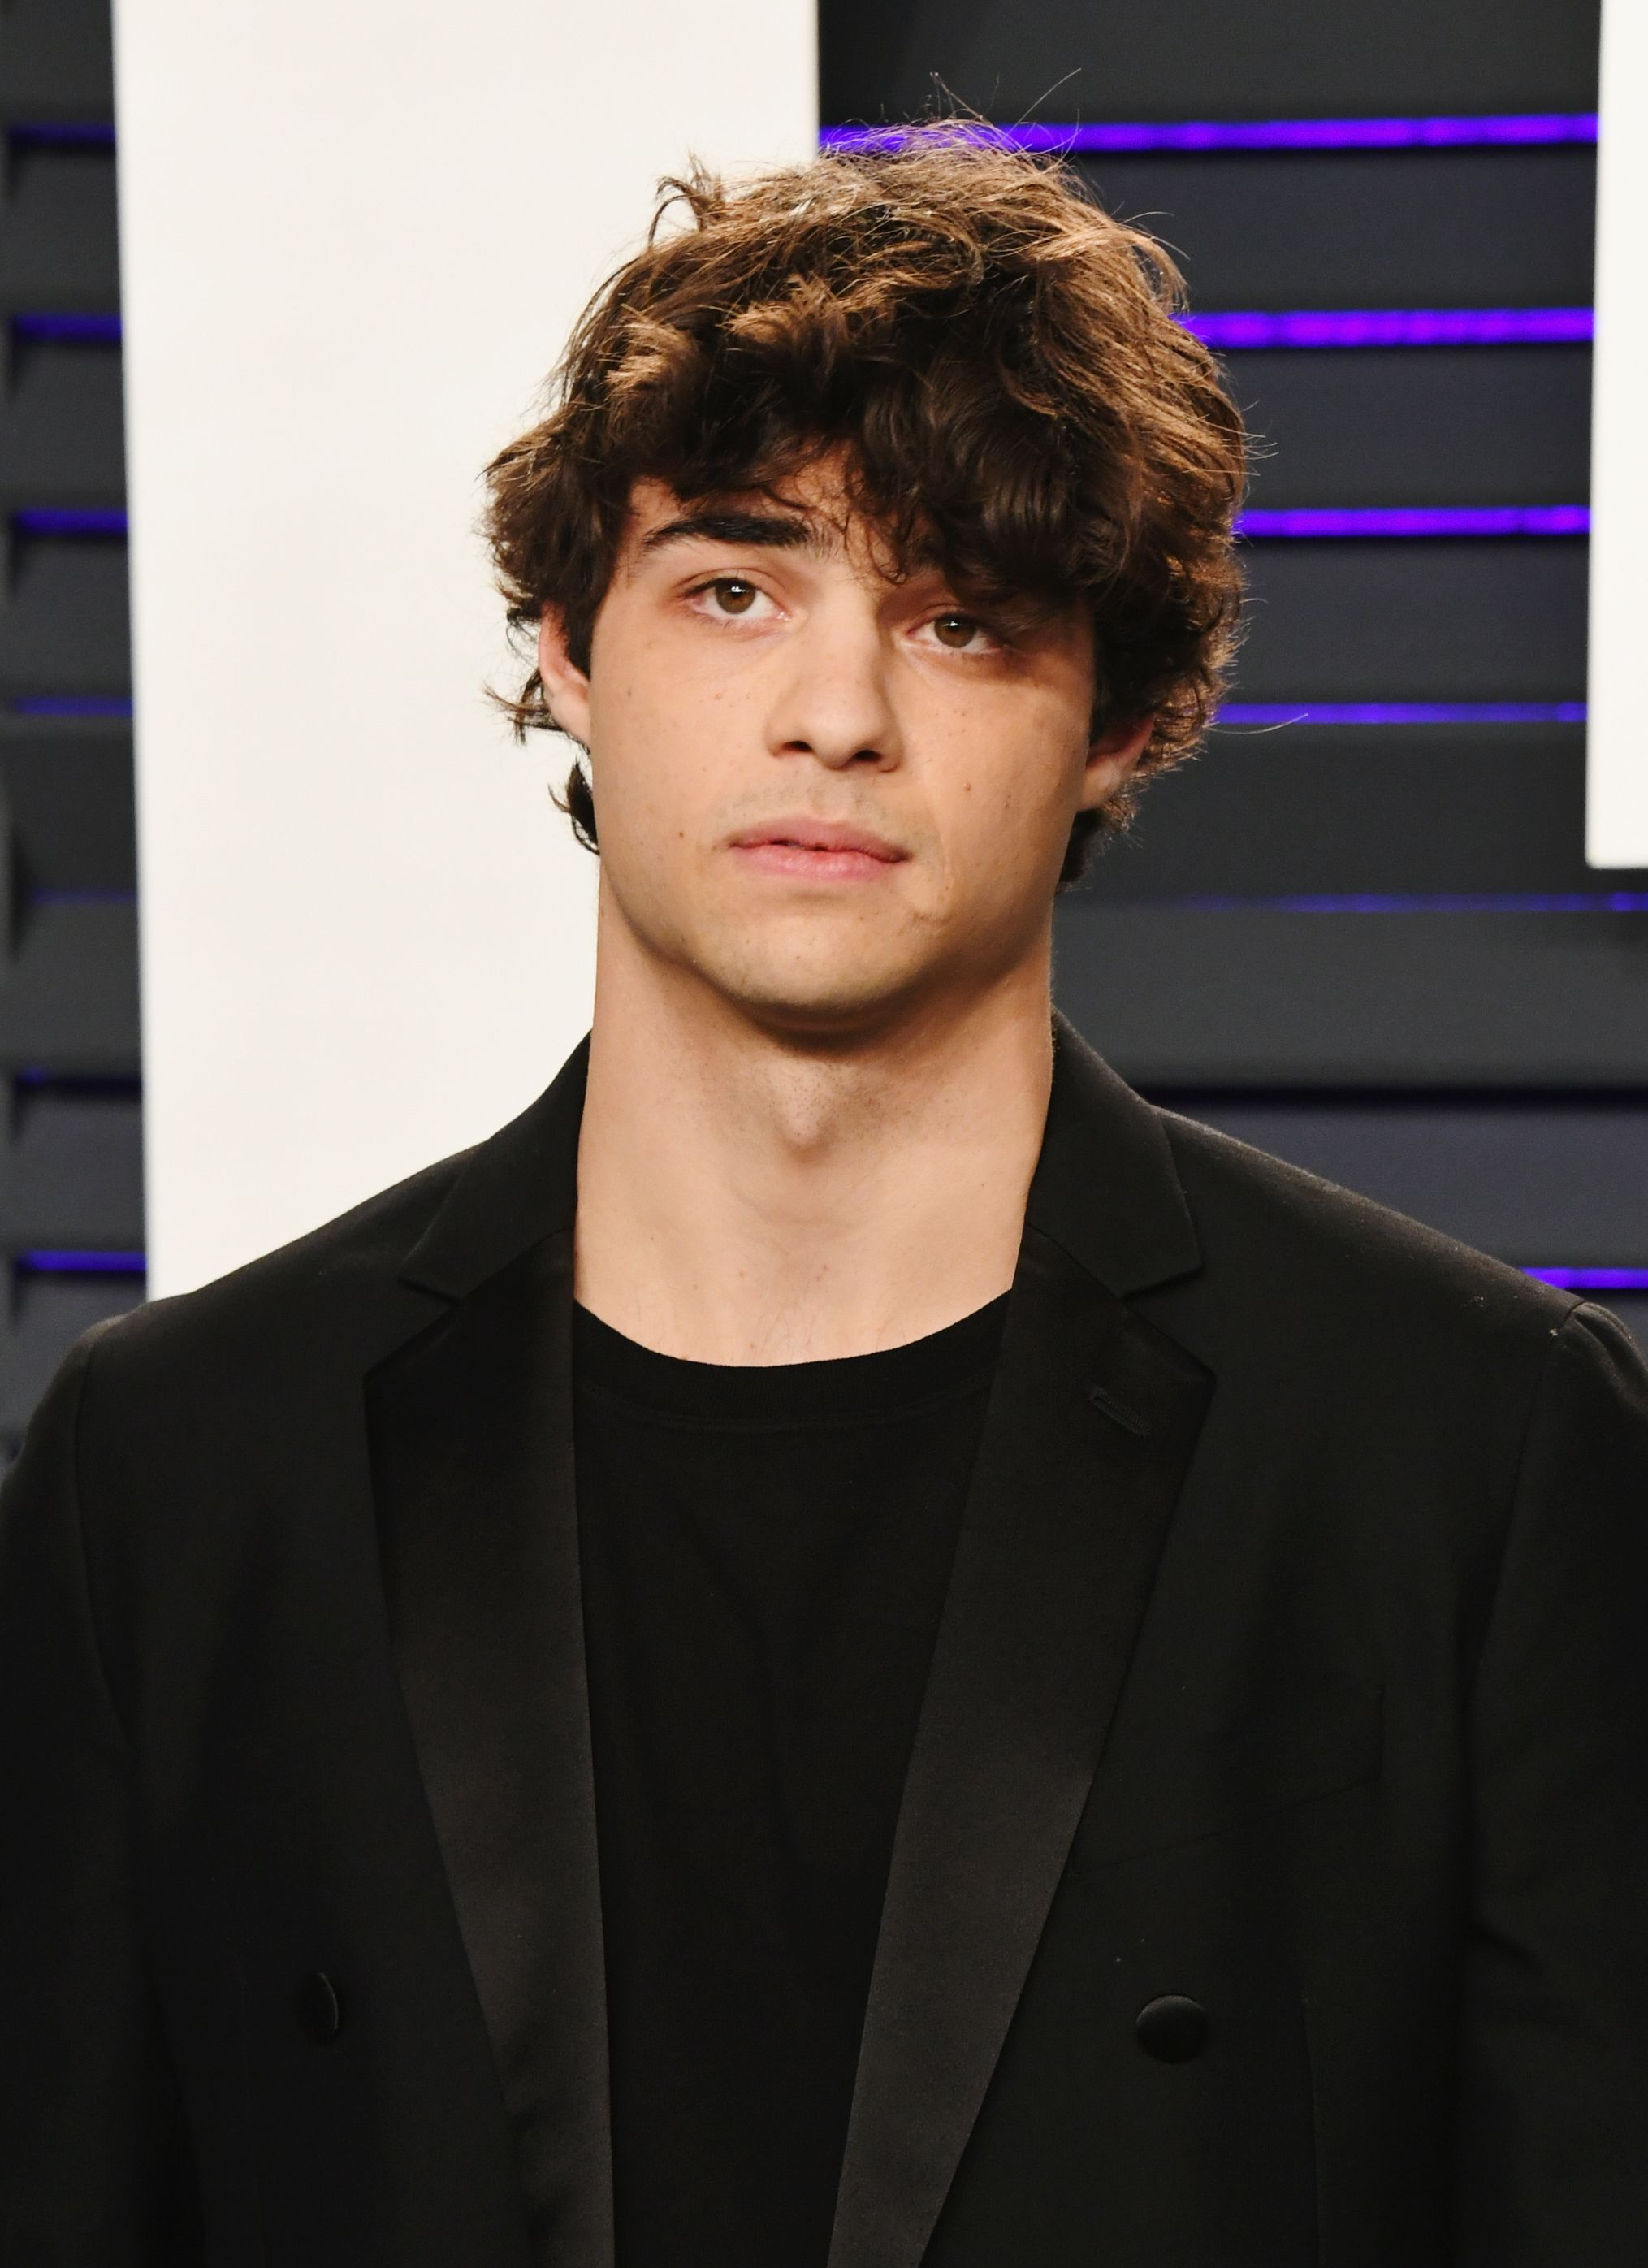 Noah Centineo Shaved Off All His Hair, and Twitter Is Not Happy